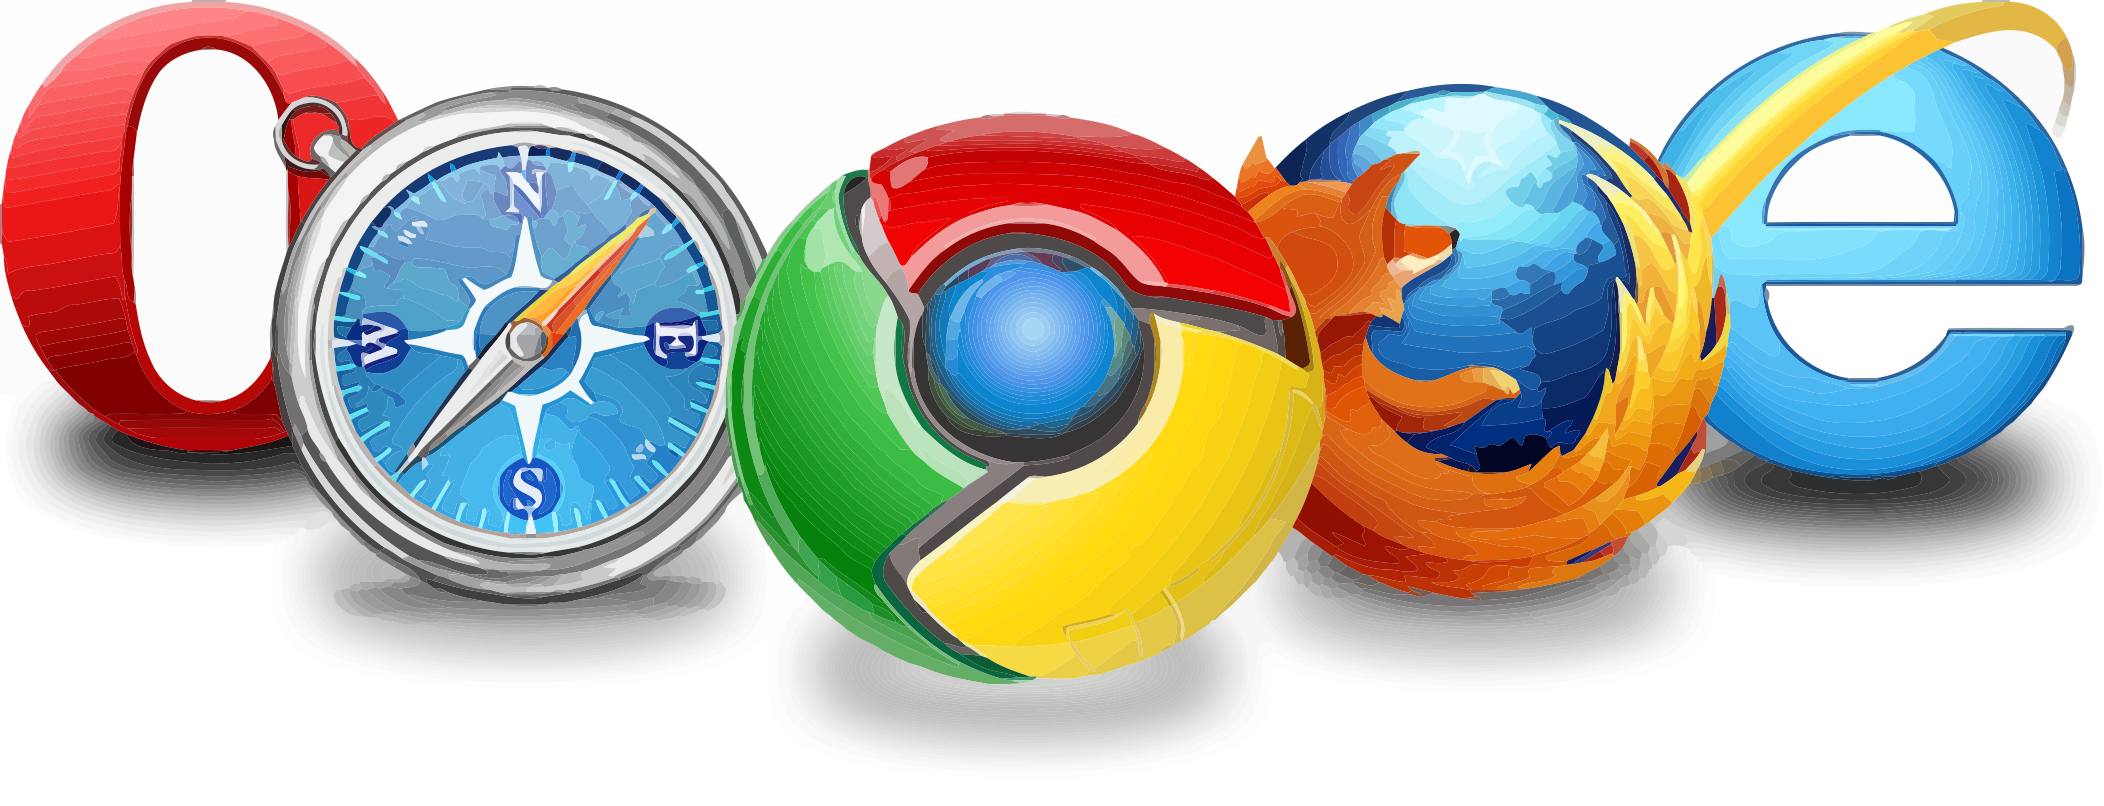 Browser Security Network Security Matters